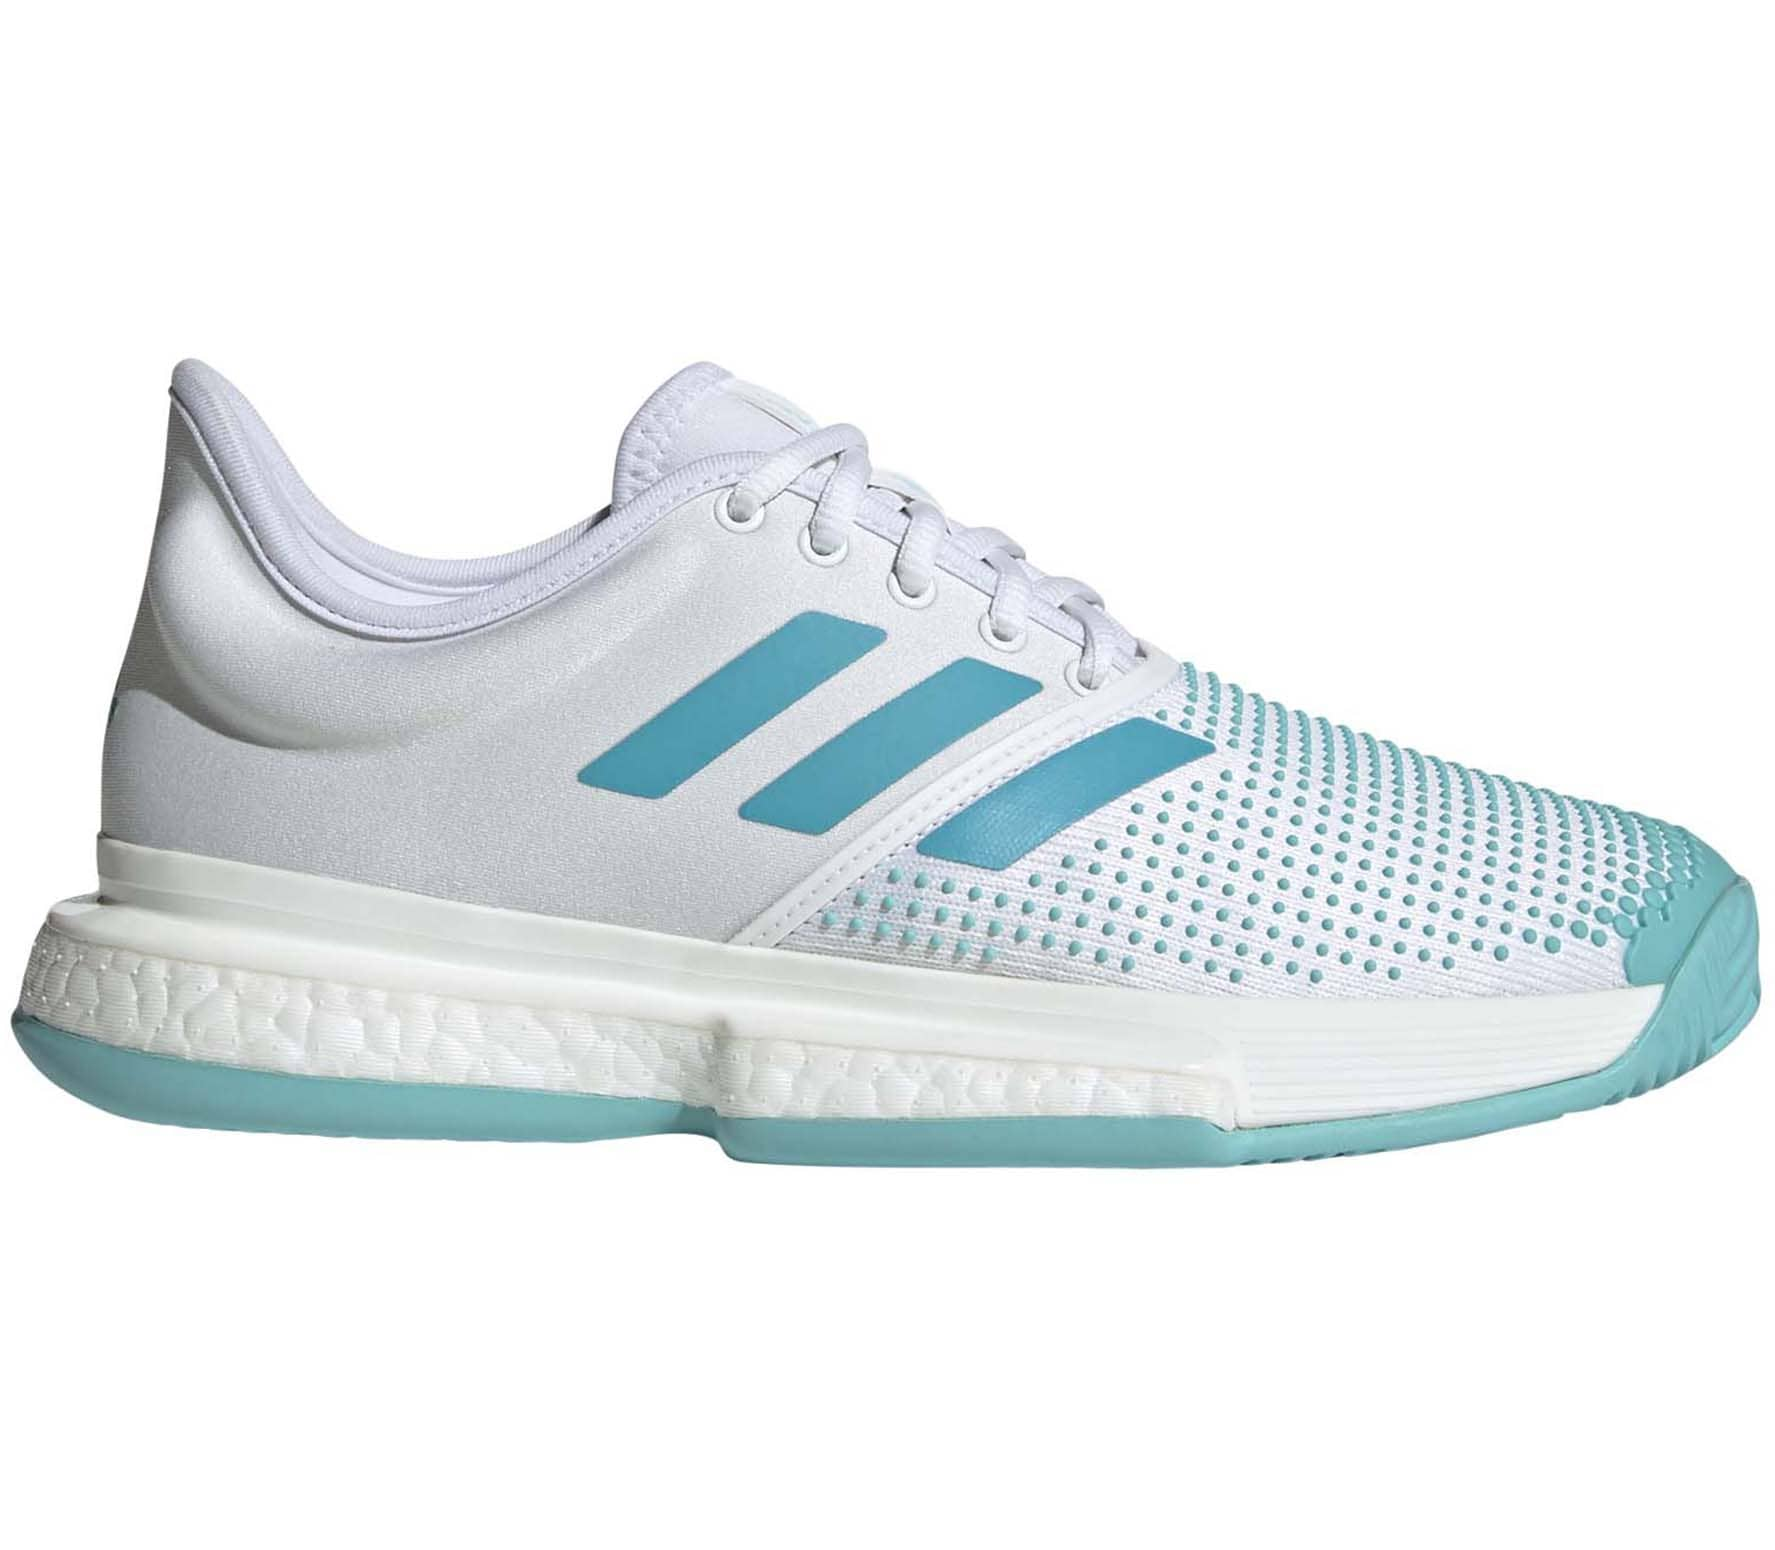 reputable site 41588 39e2f adidas Performance - Sole Court Boost X Donna Scarpa da tennis (bianco  turchese)